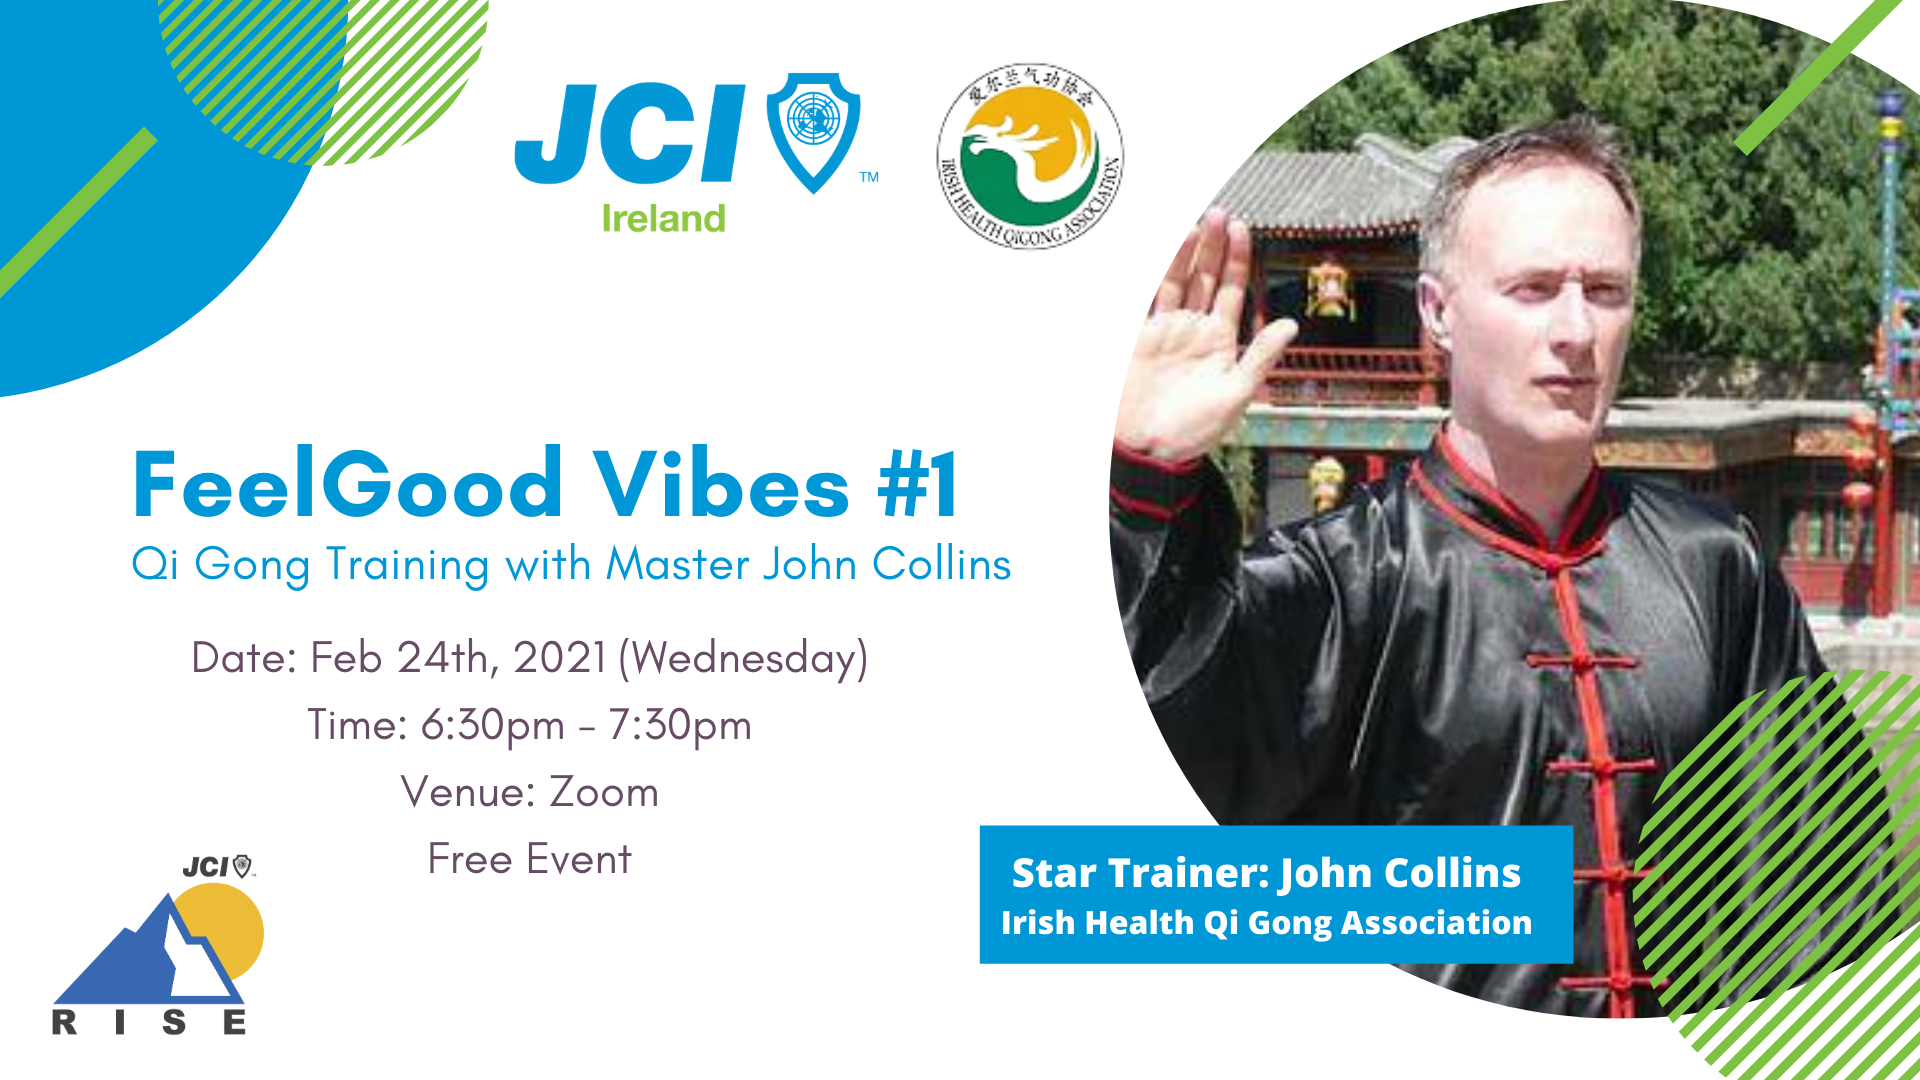 FeelGood Vibes #1 Qi Gong Training with Master John Collins